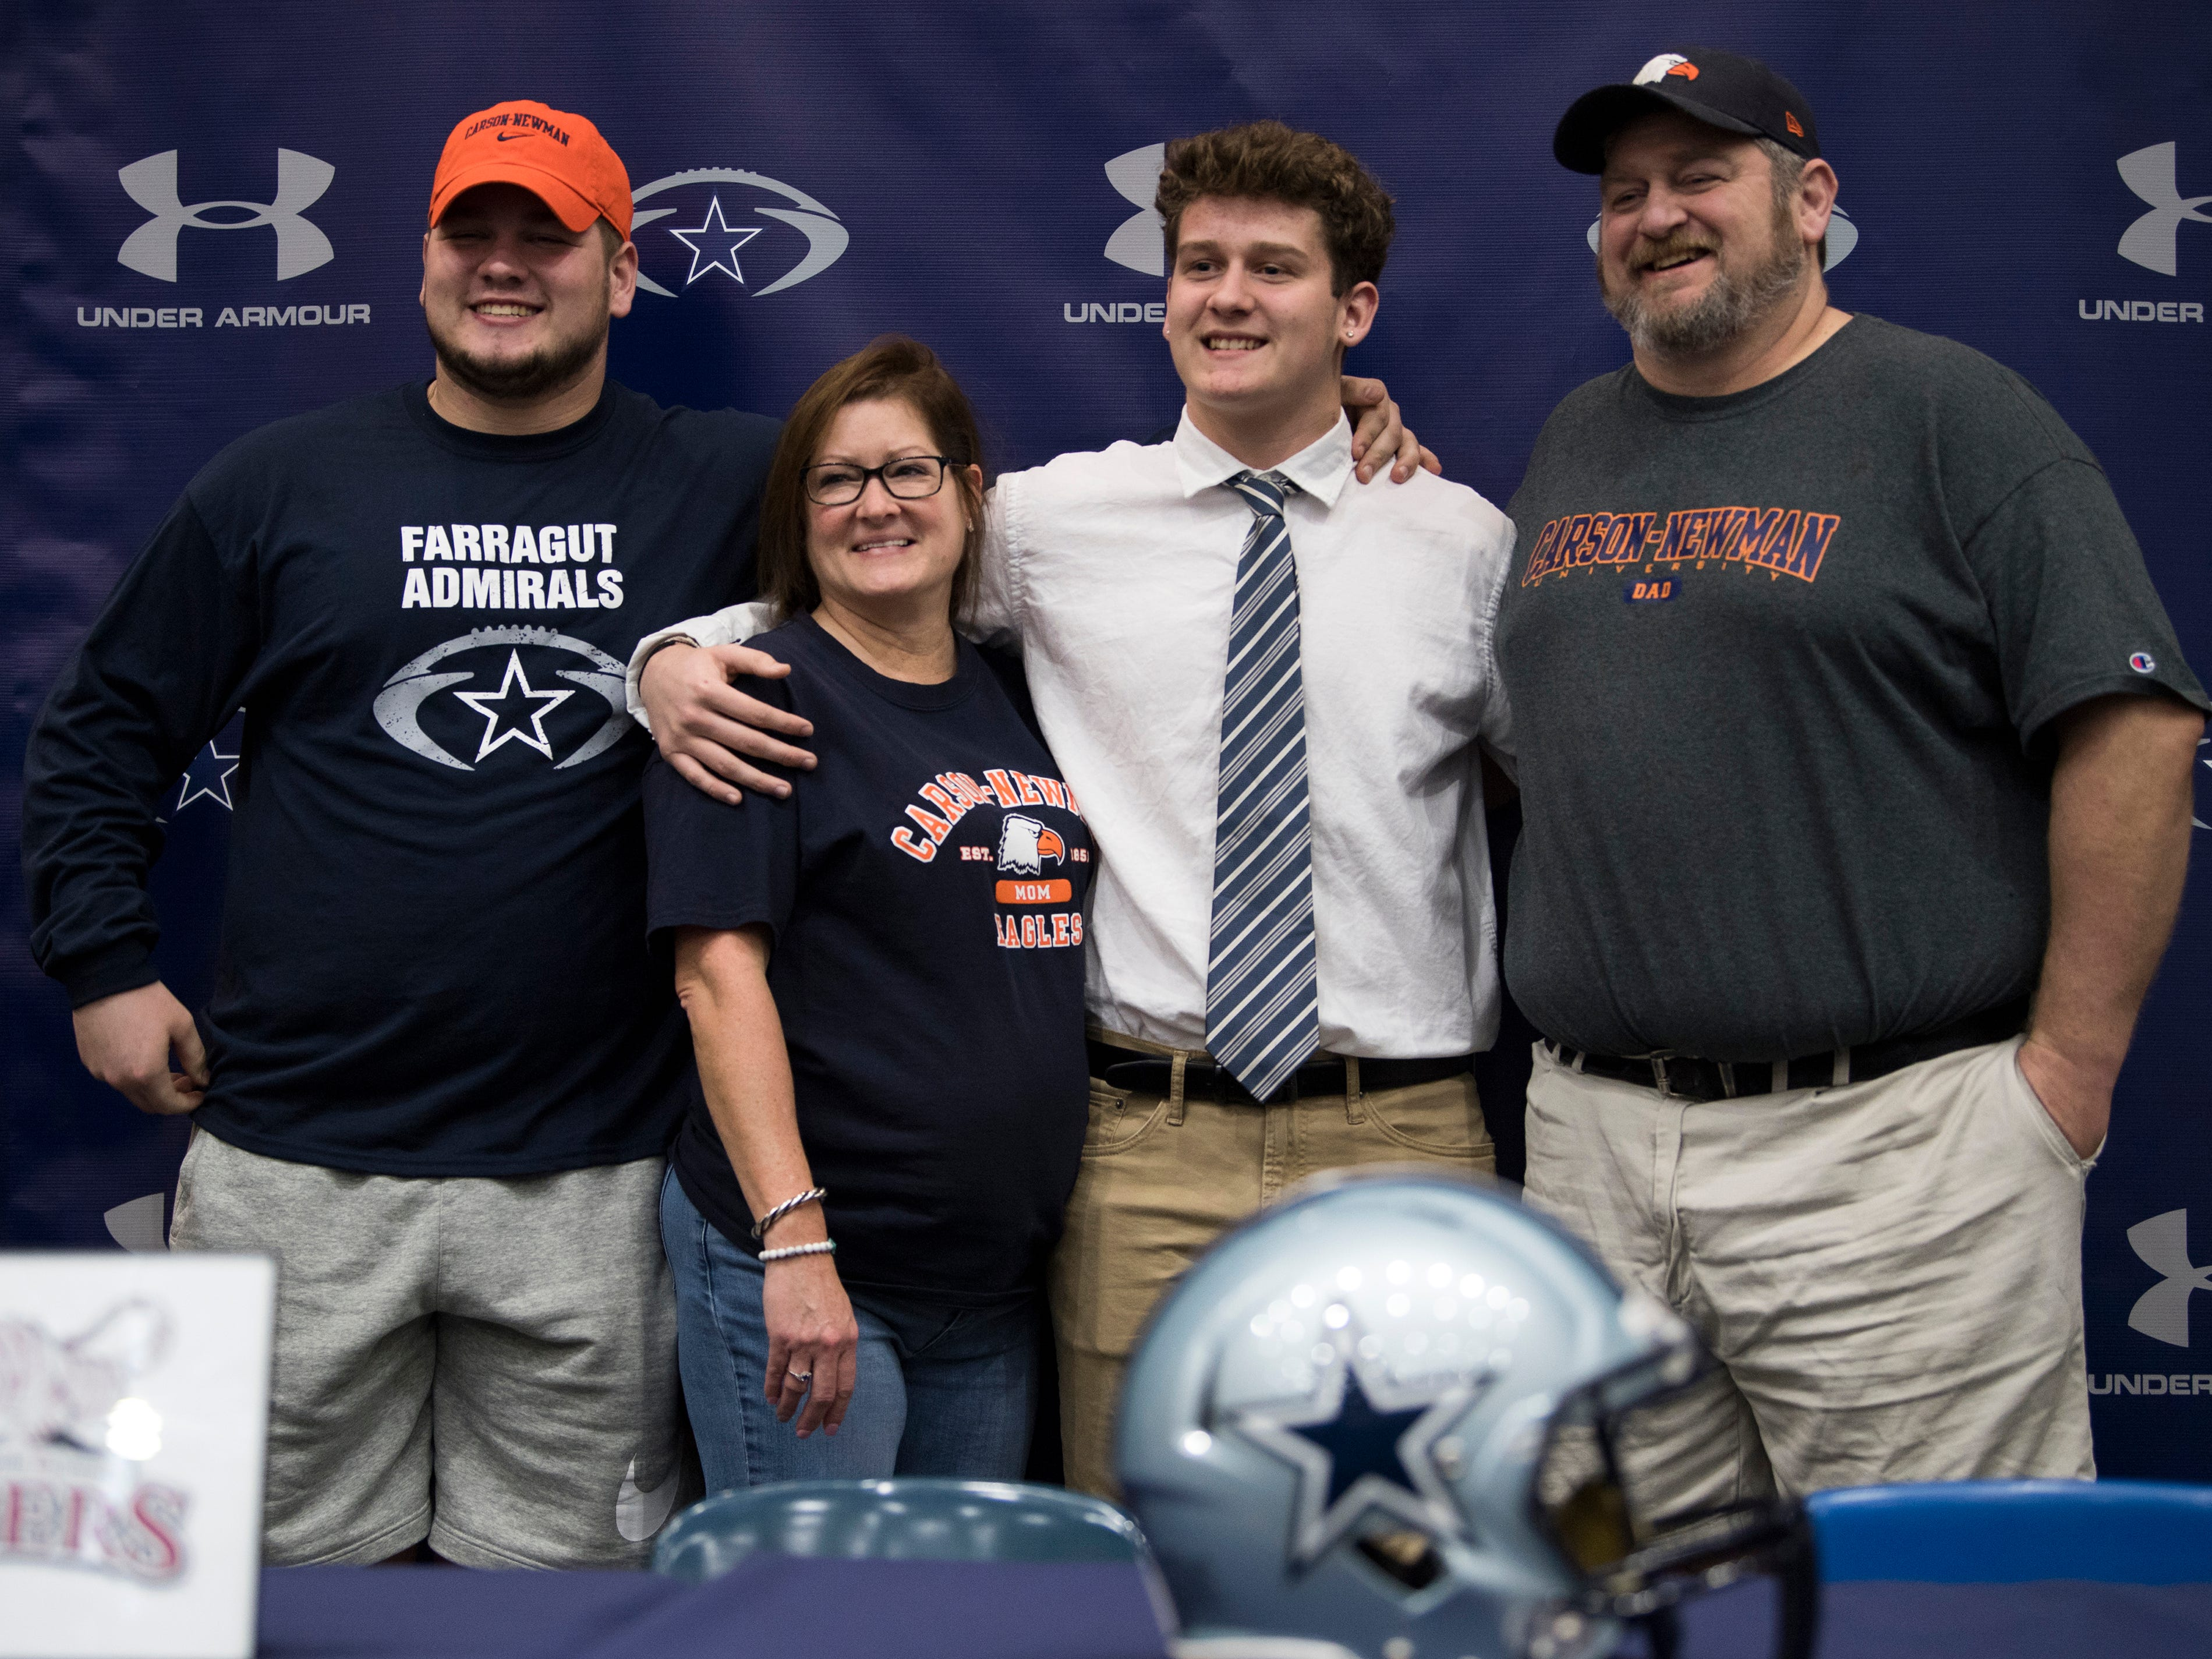 Farragut football player Jake Parsons during a National Signing Day event at Farragut High's auditorium on Wednesday, February 6, 2019.